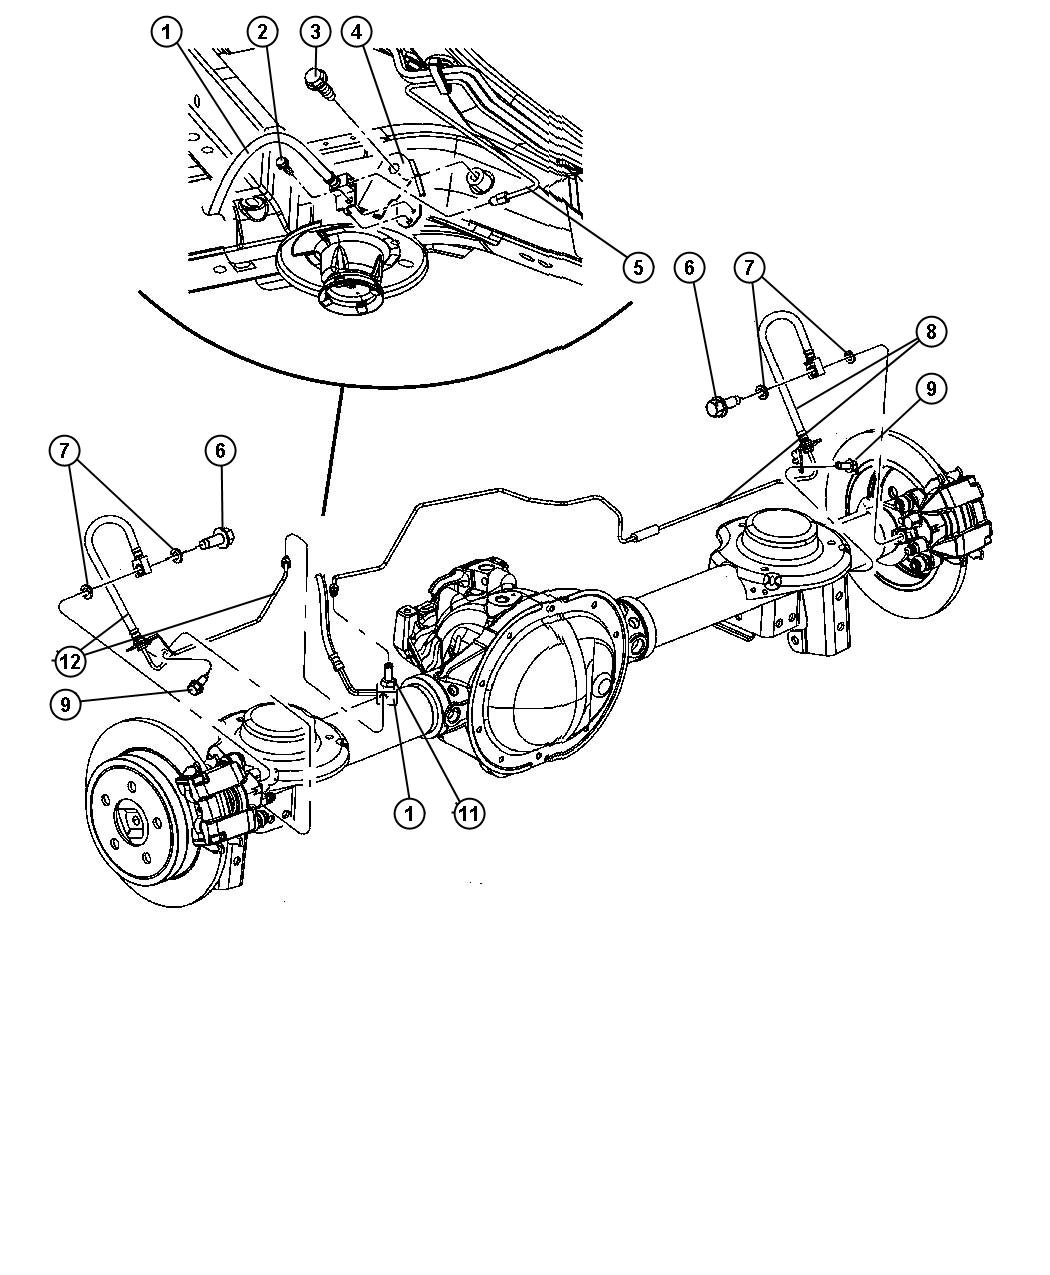 2006 Jeep Liberty Bundle. Used for: fuel and brake lines